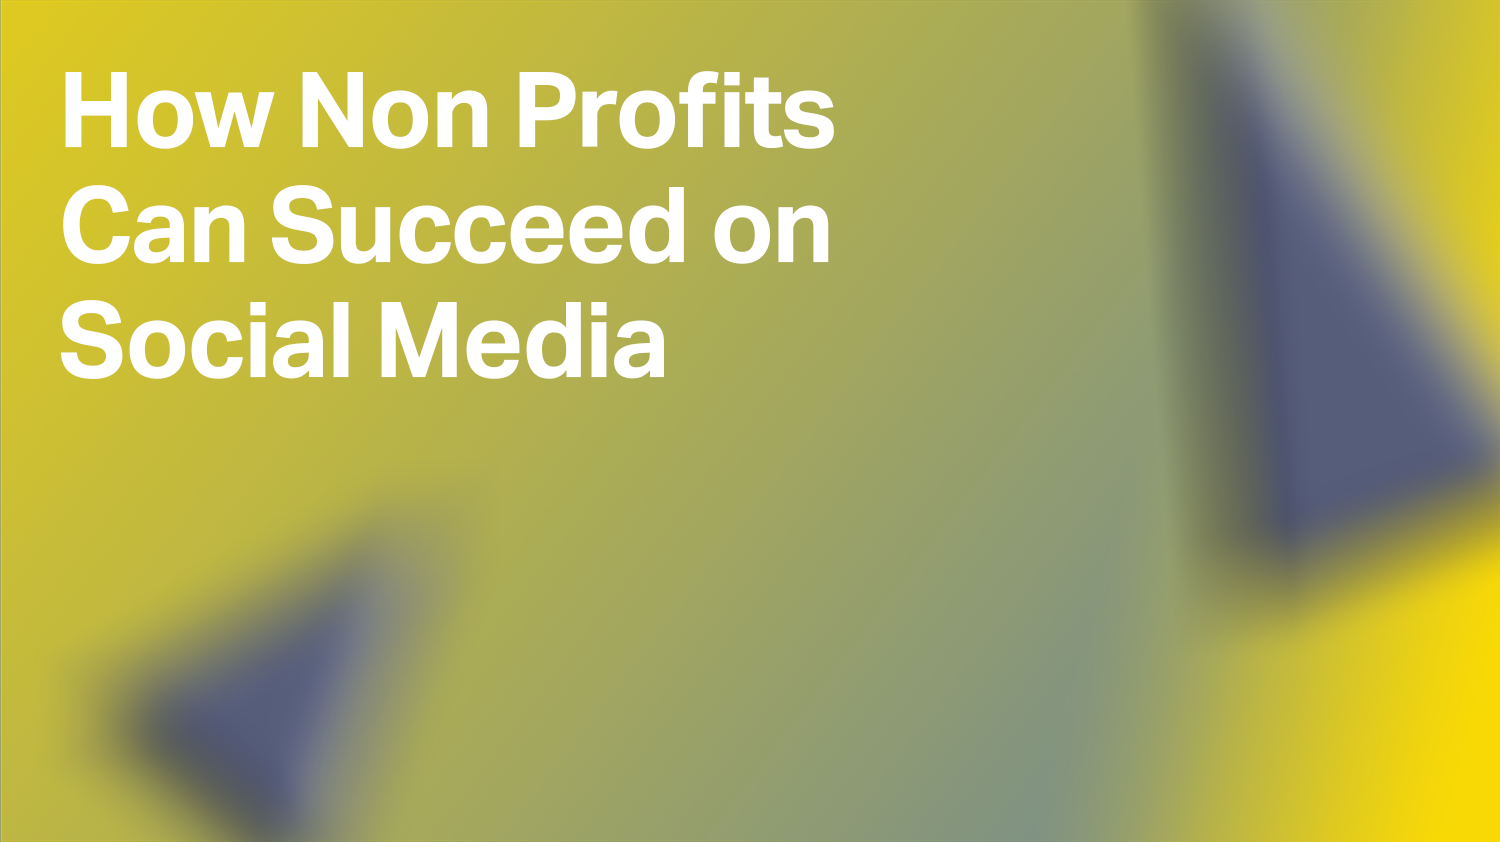 How Non Profits Can Succeed on Social Media